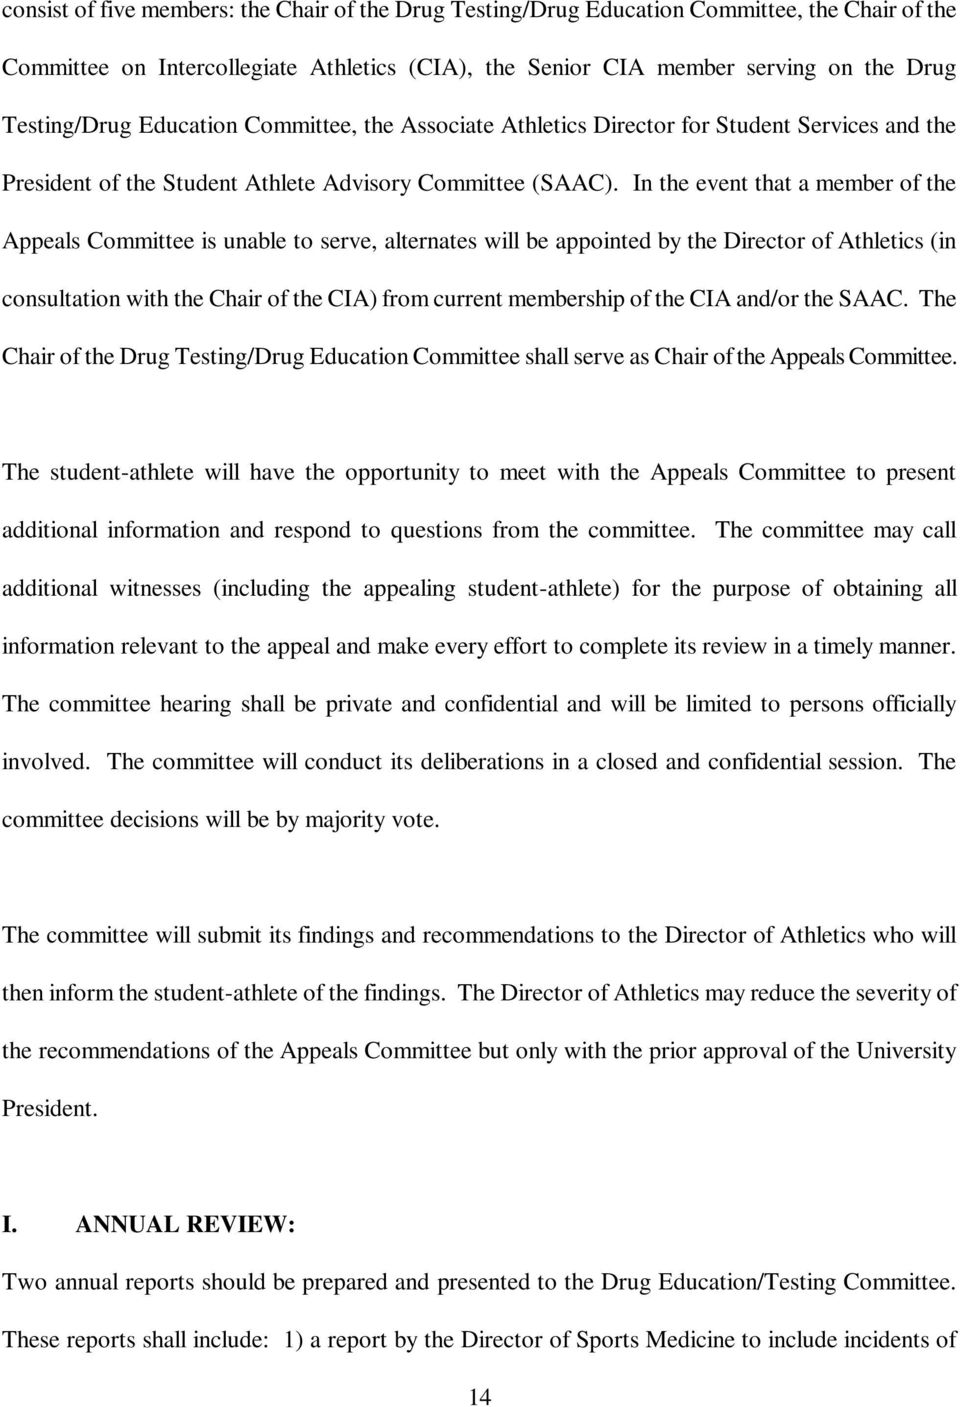 In the event that a member of the Appeals Committee is unable to serve, alternates will be appointed by the Director of Athletics (in consultation with the Chair of the CIA) from current membership